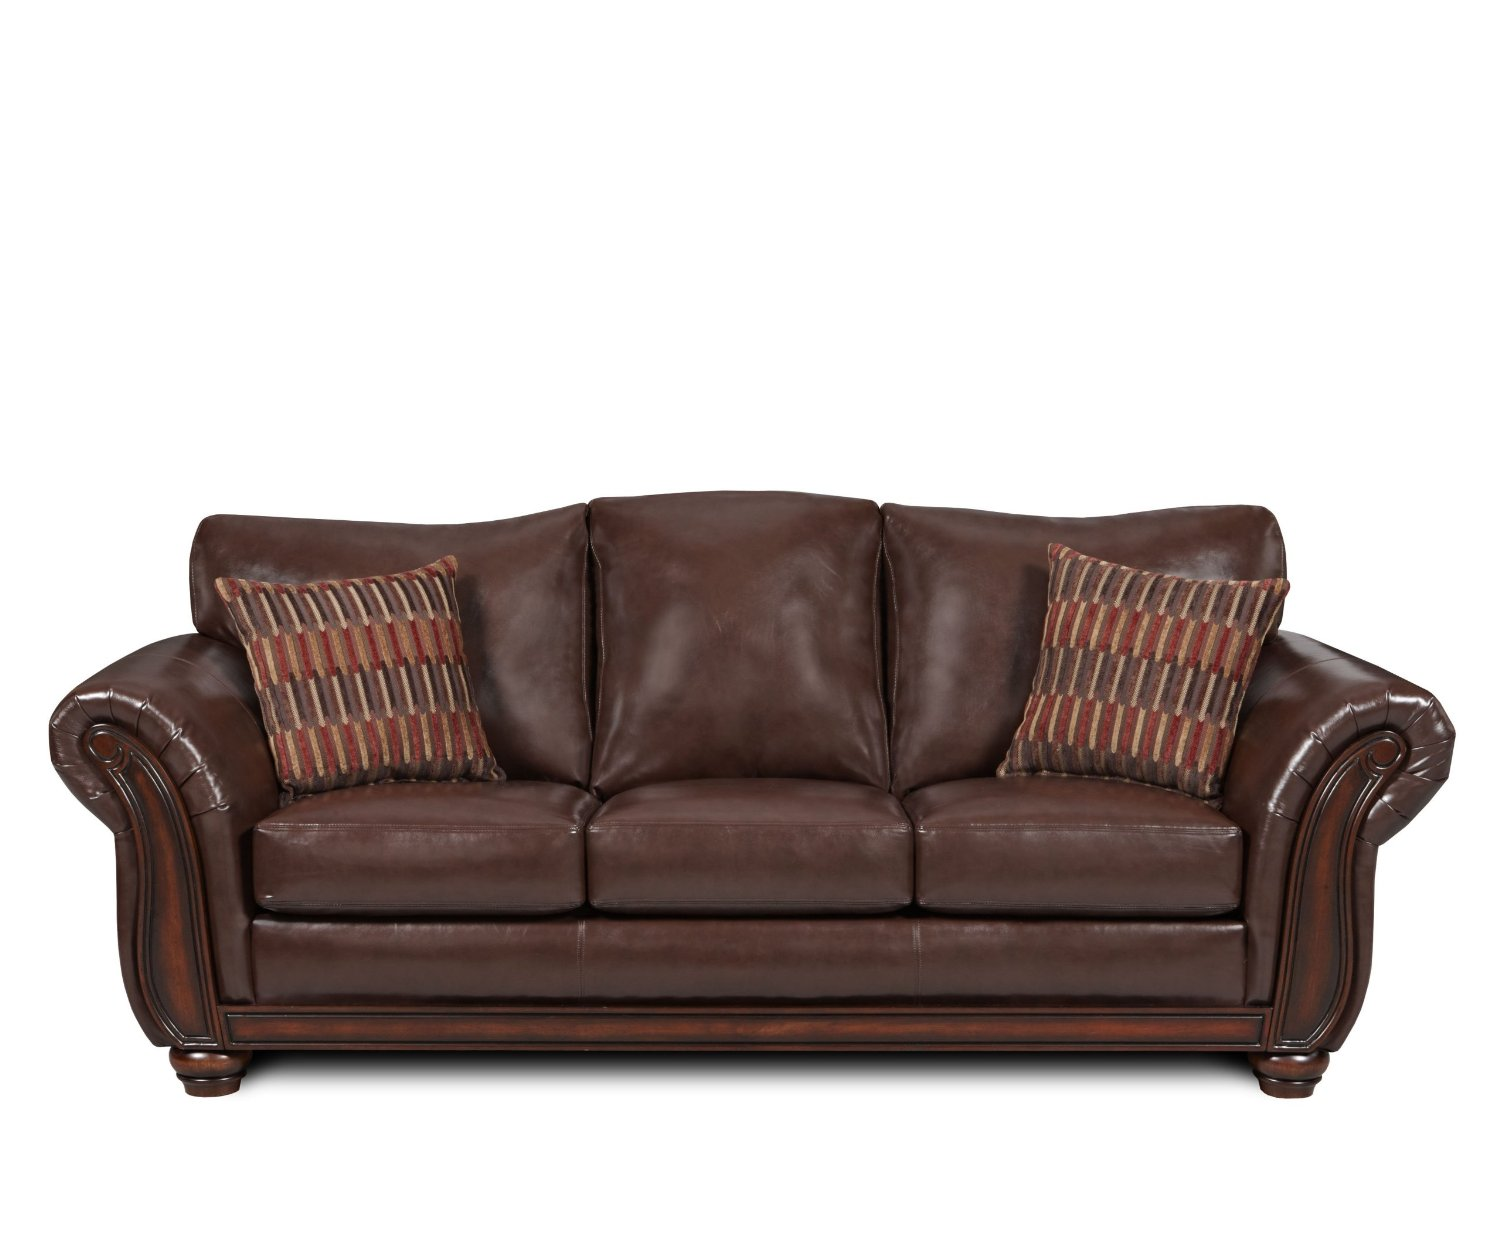 Leather couch furniture guide leather for Leather sectional sofa